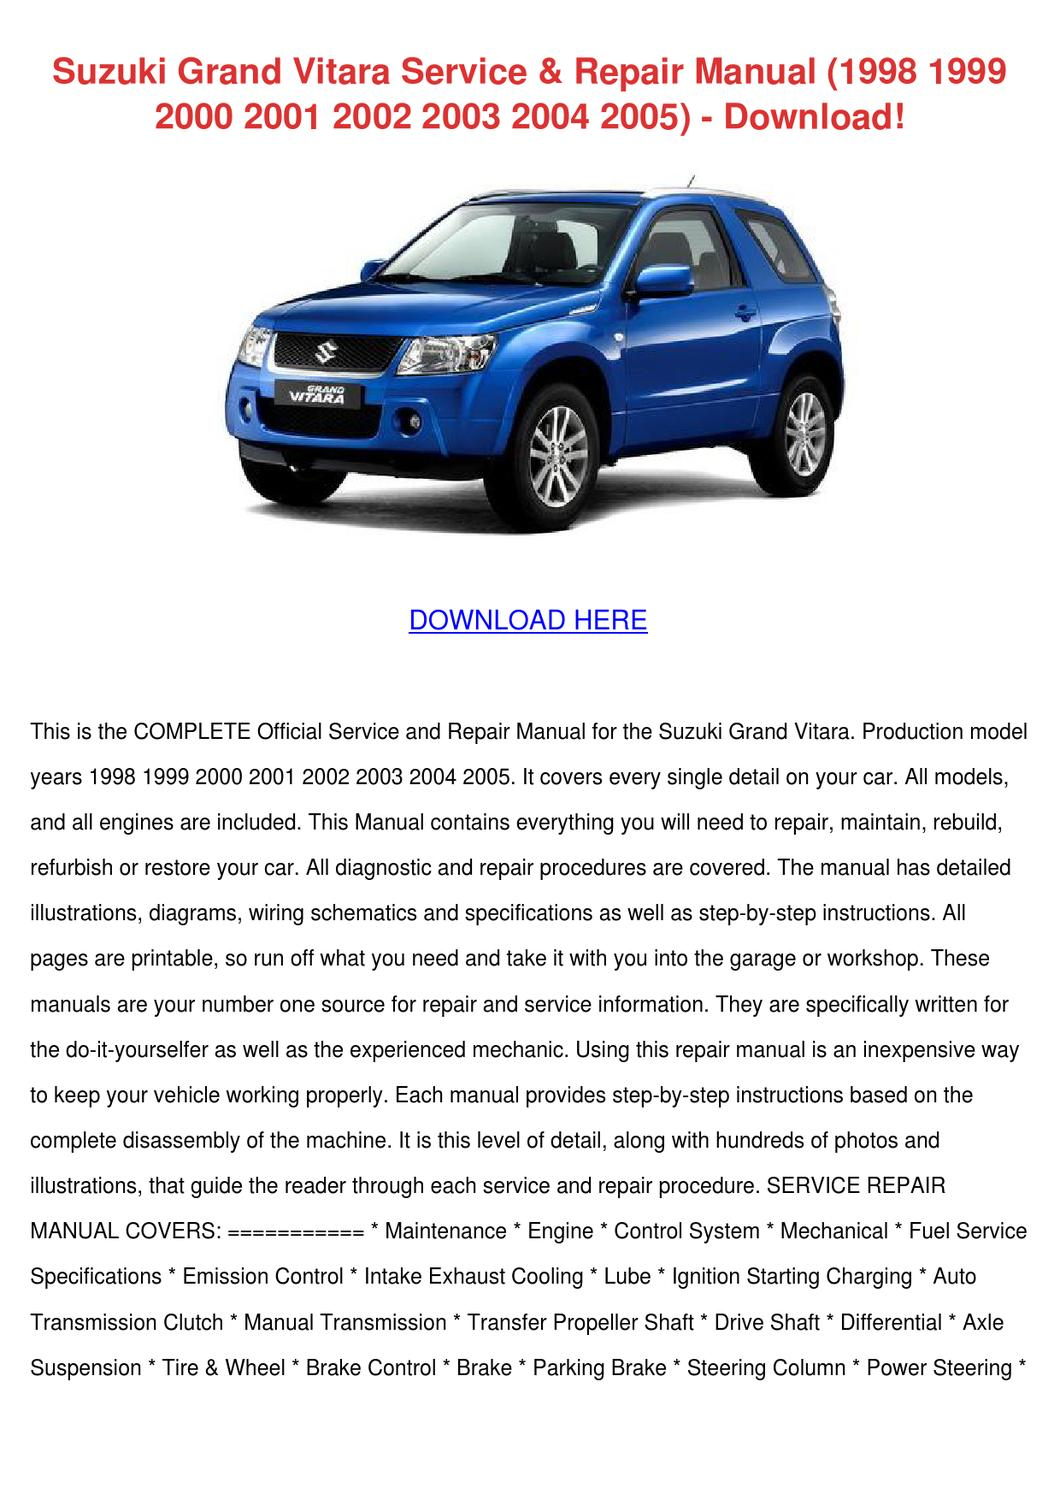 2002 suzuki grand vitara repair manual download